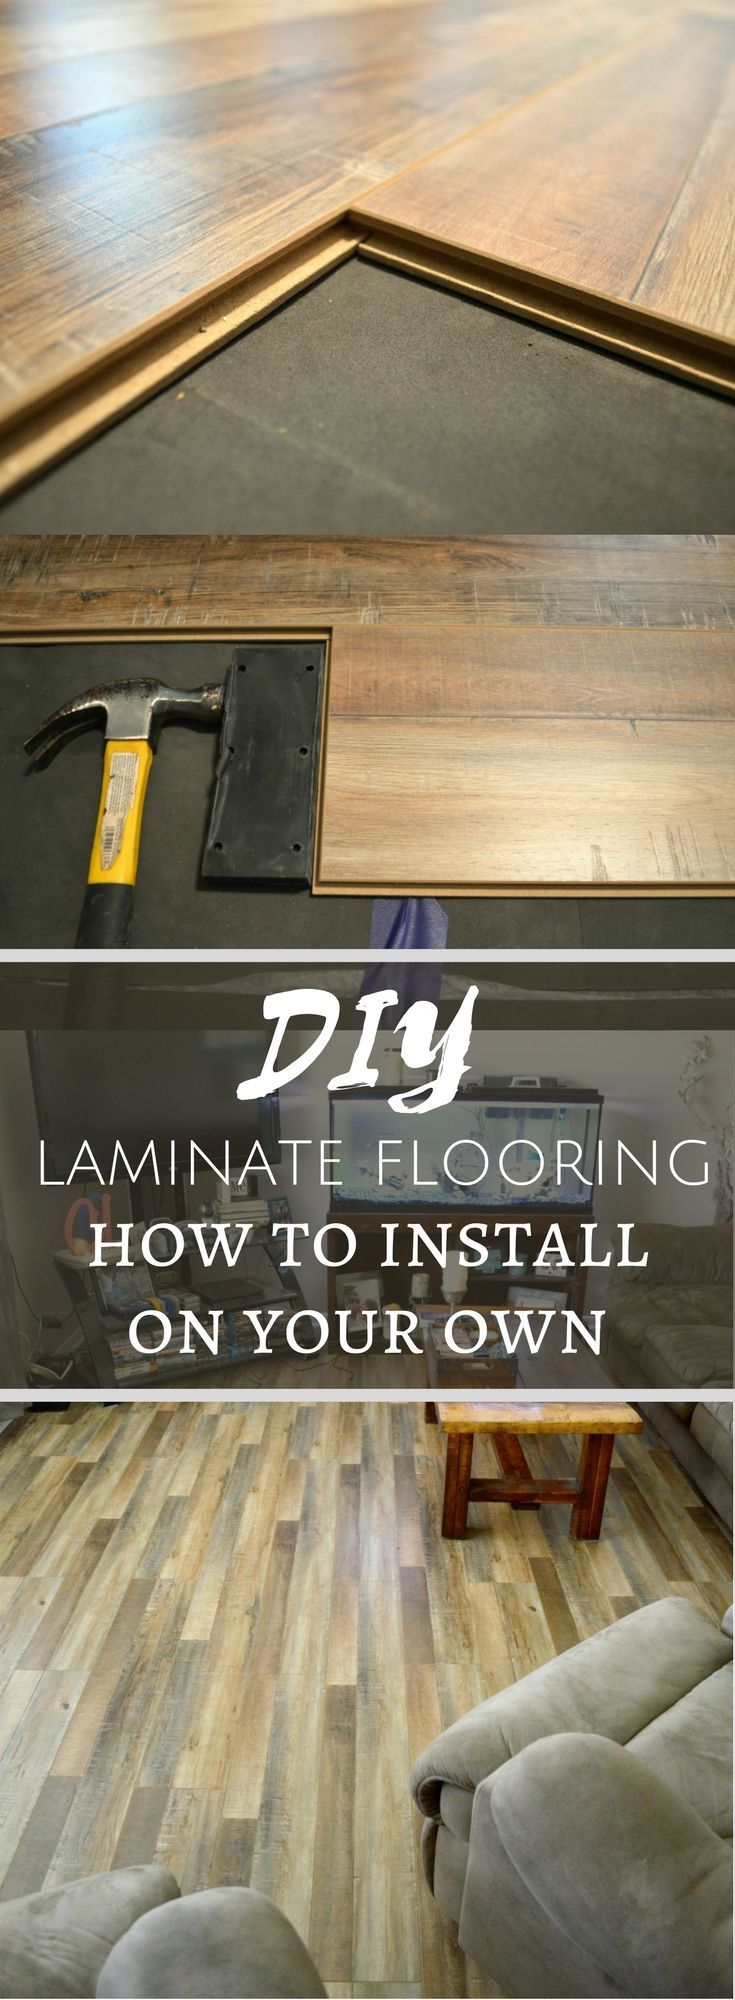 How To Install Laminate Floors On Your Own [A Beginner's